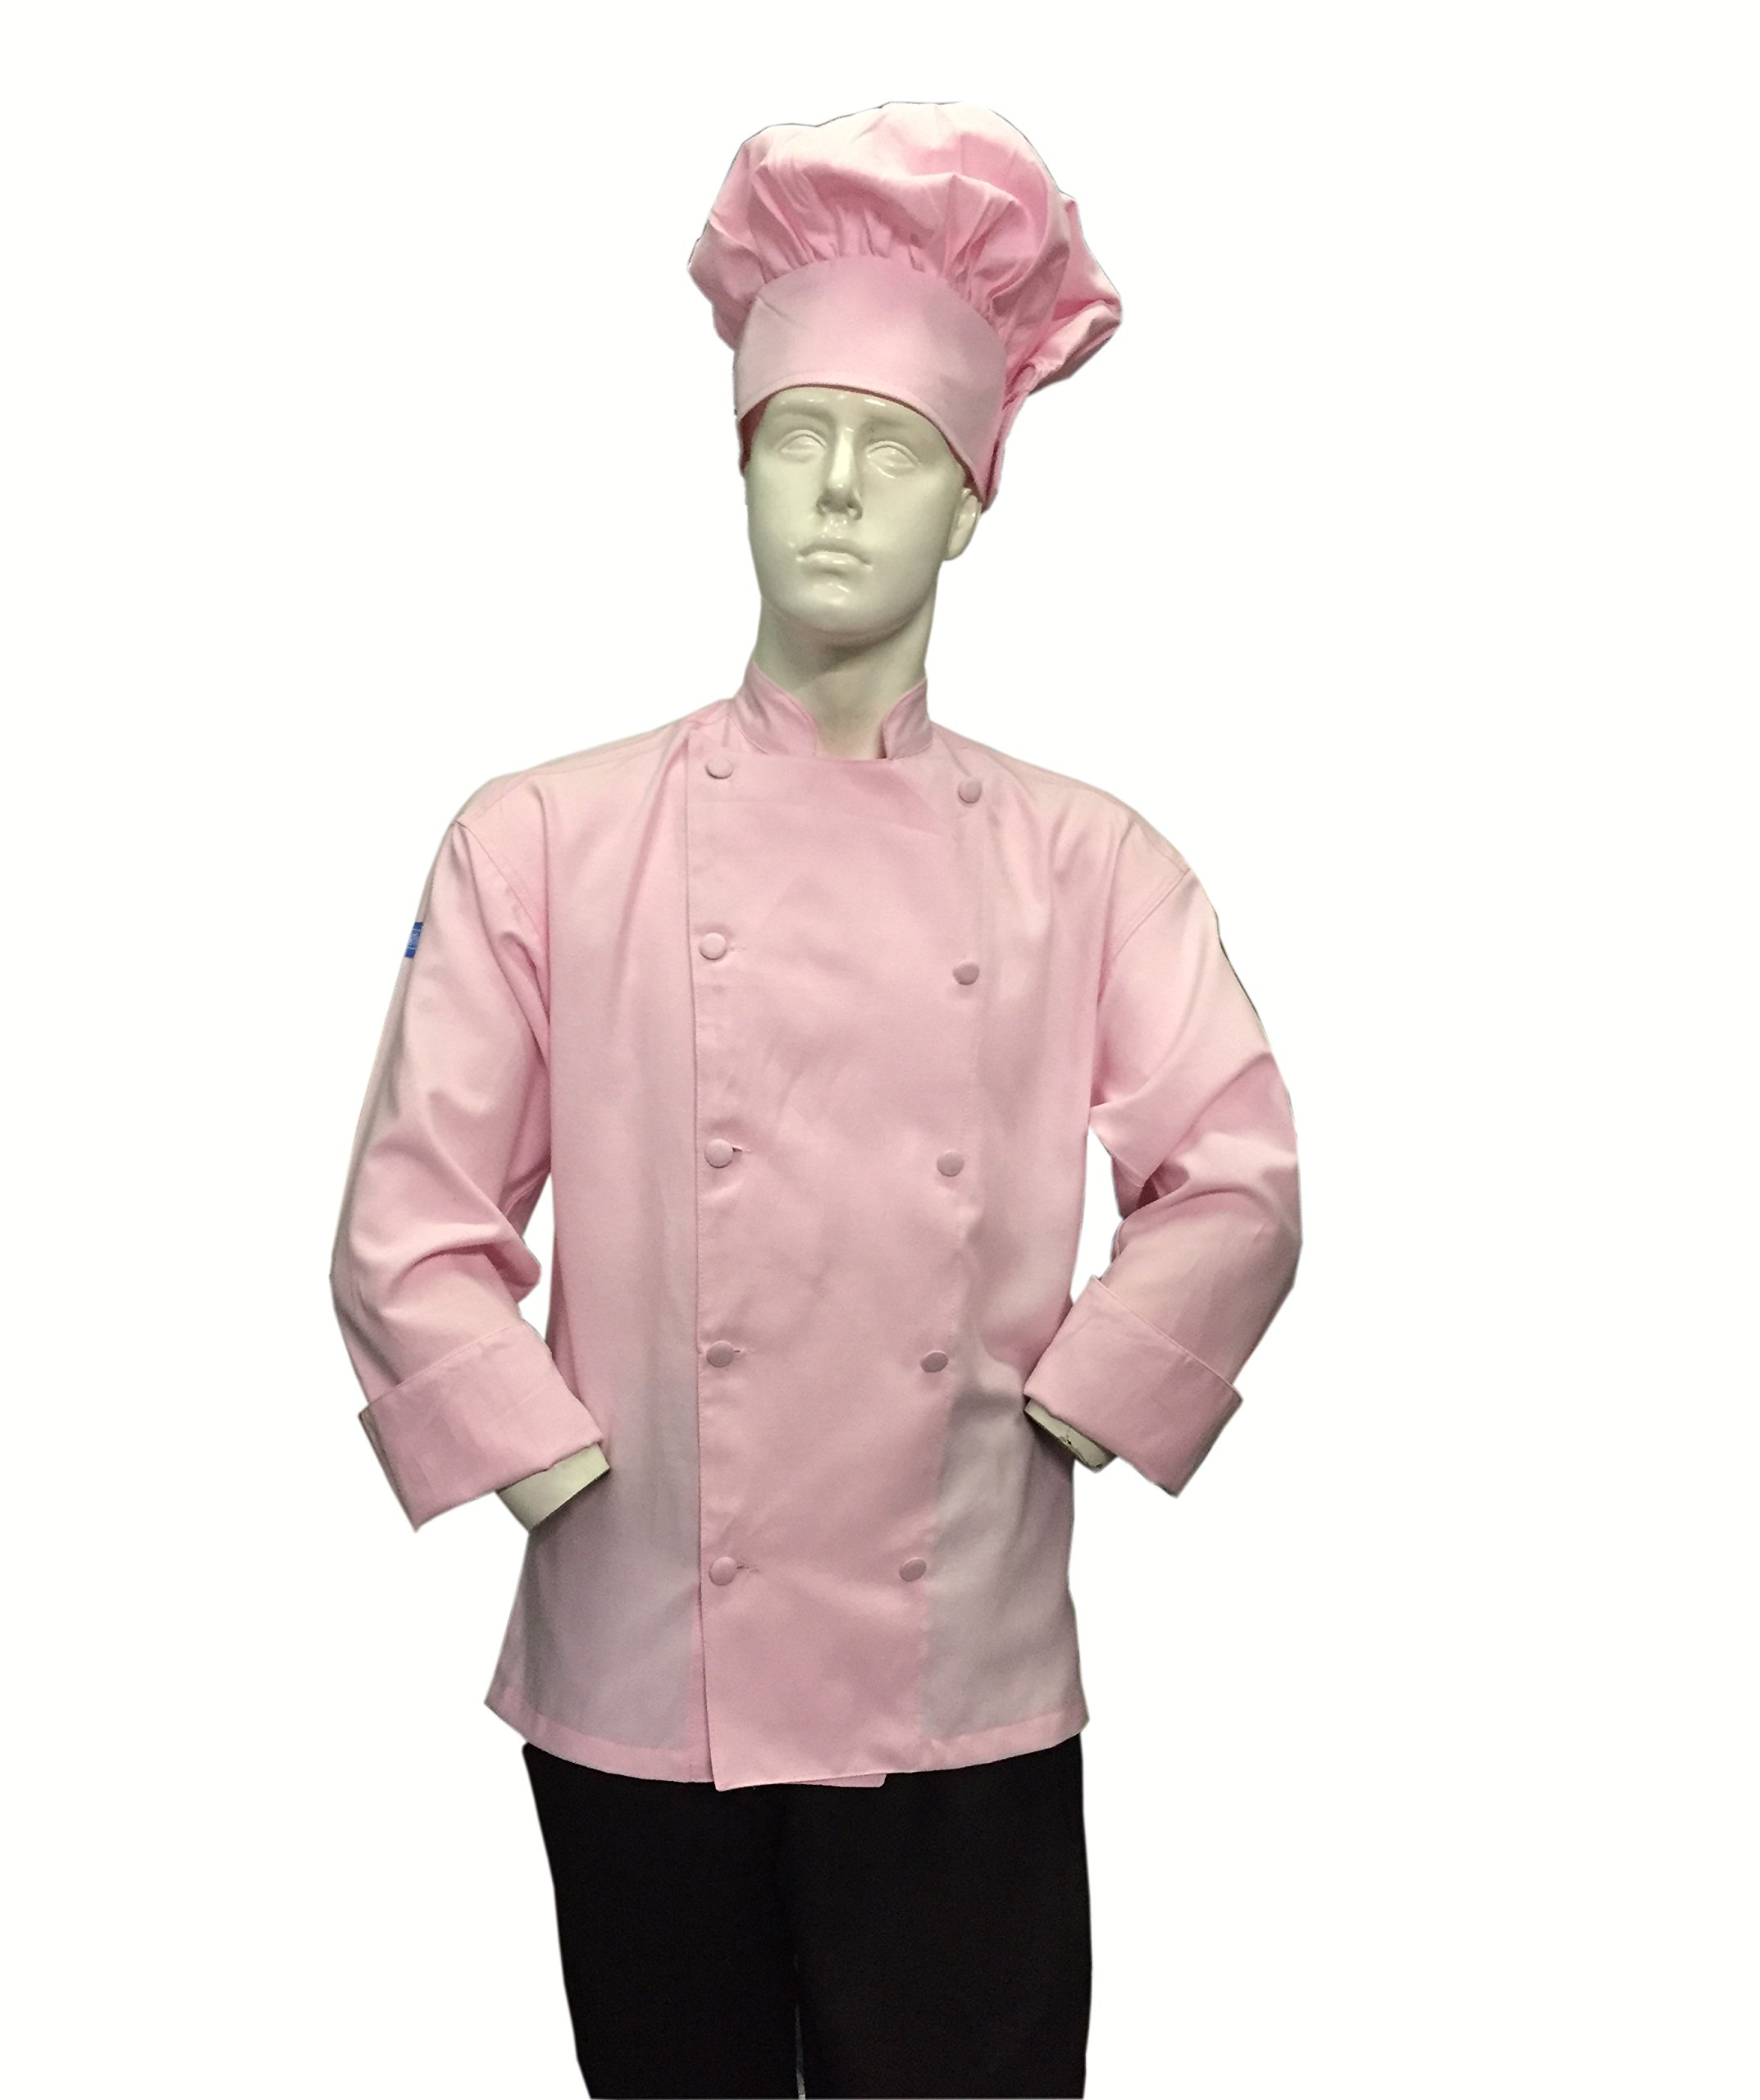 Chefskin Soft Pink Chef Jacket Coat Cool Soft Twill Fabric Beautiful + Hat (2X-60 in chest)